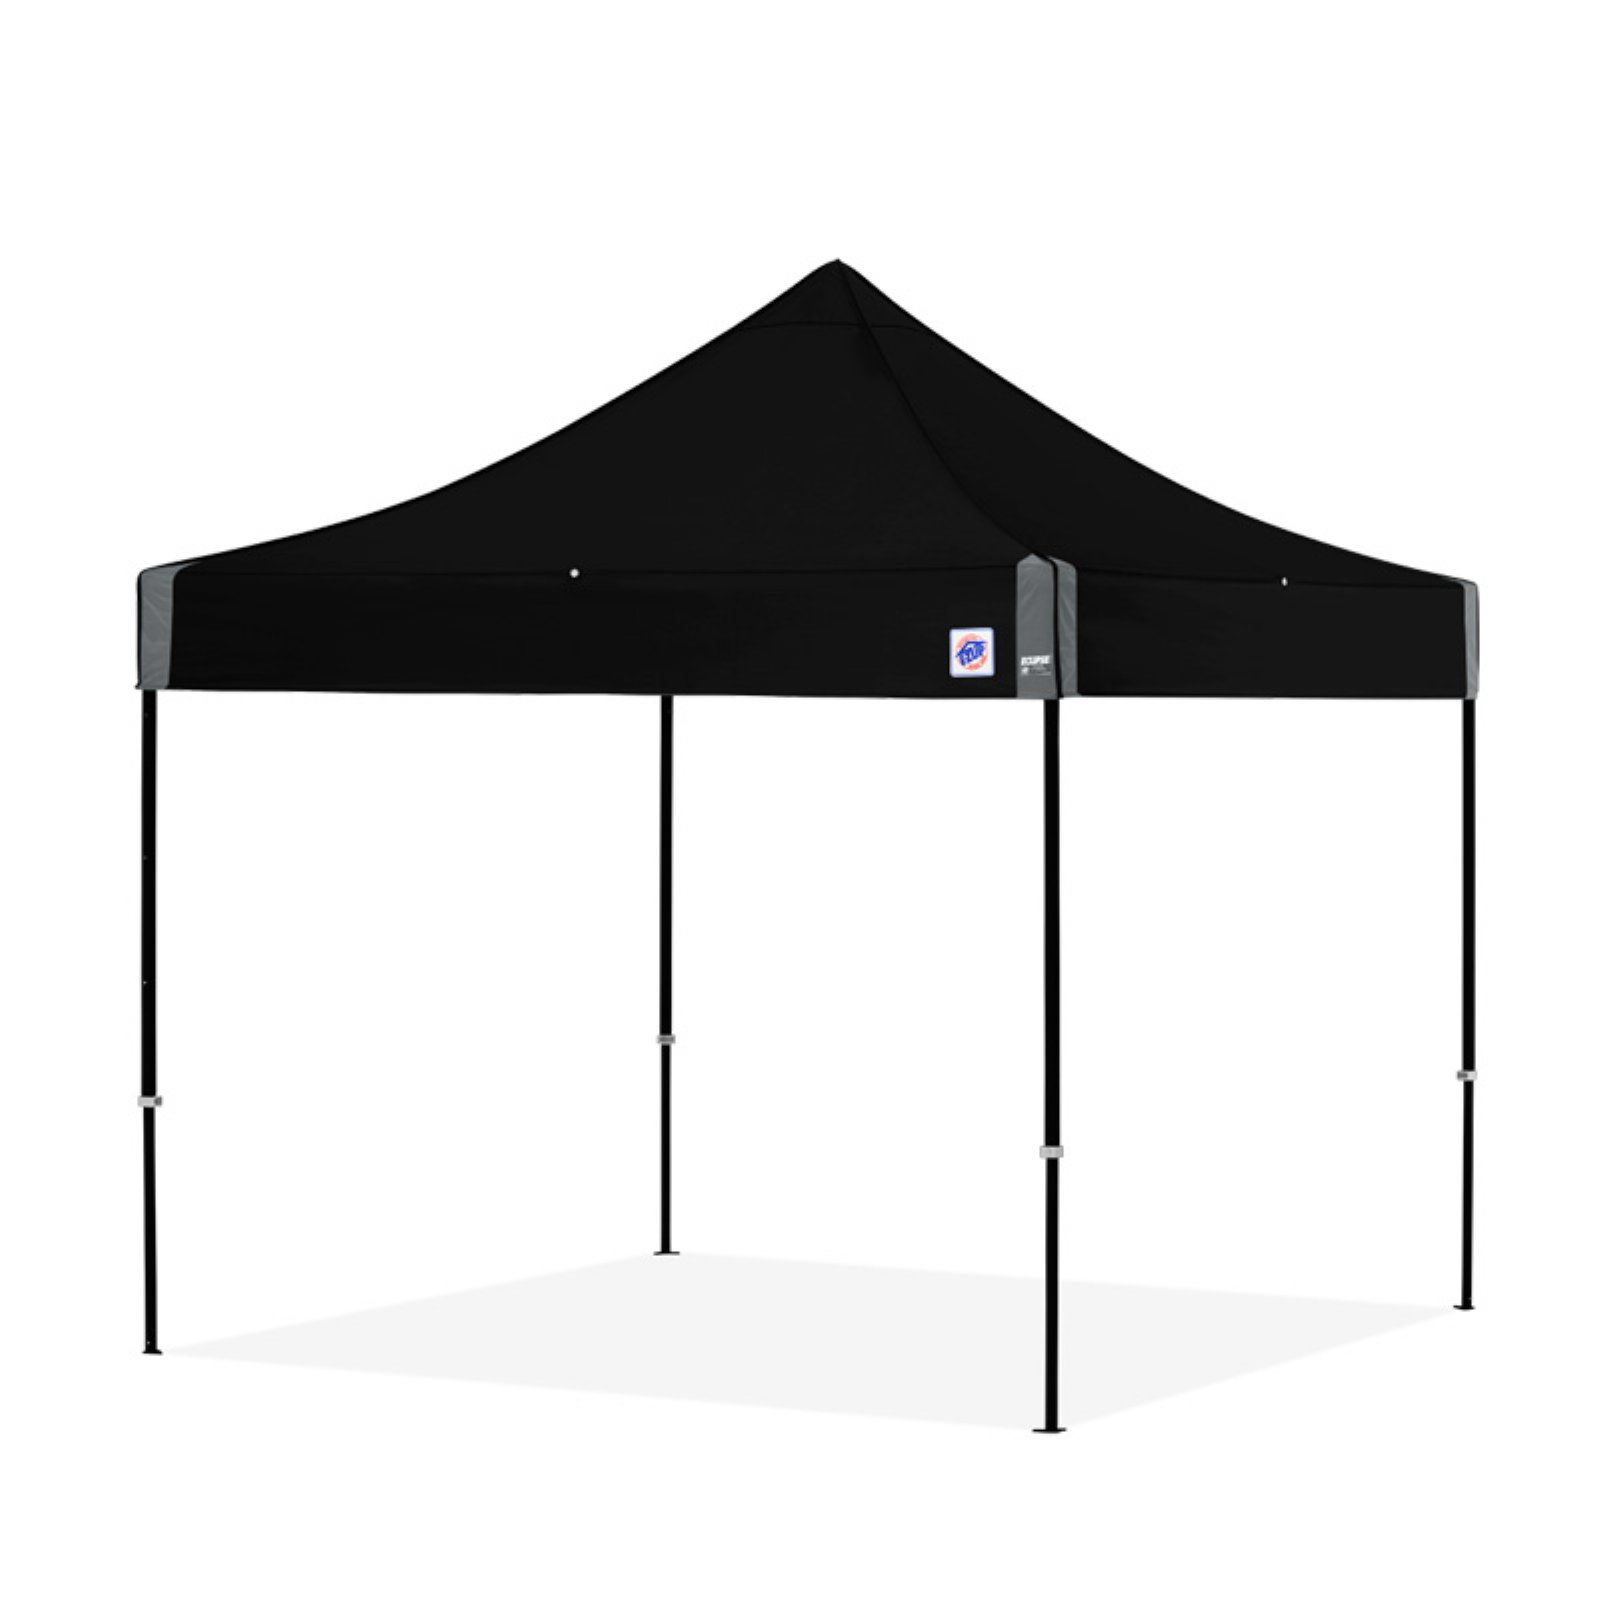 E Z Up Eclipse 10 X 10 Ft Canopy With Carbon Steel Frame Jet Black Black Steel Frame Canopy Steel